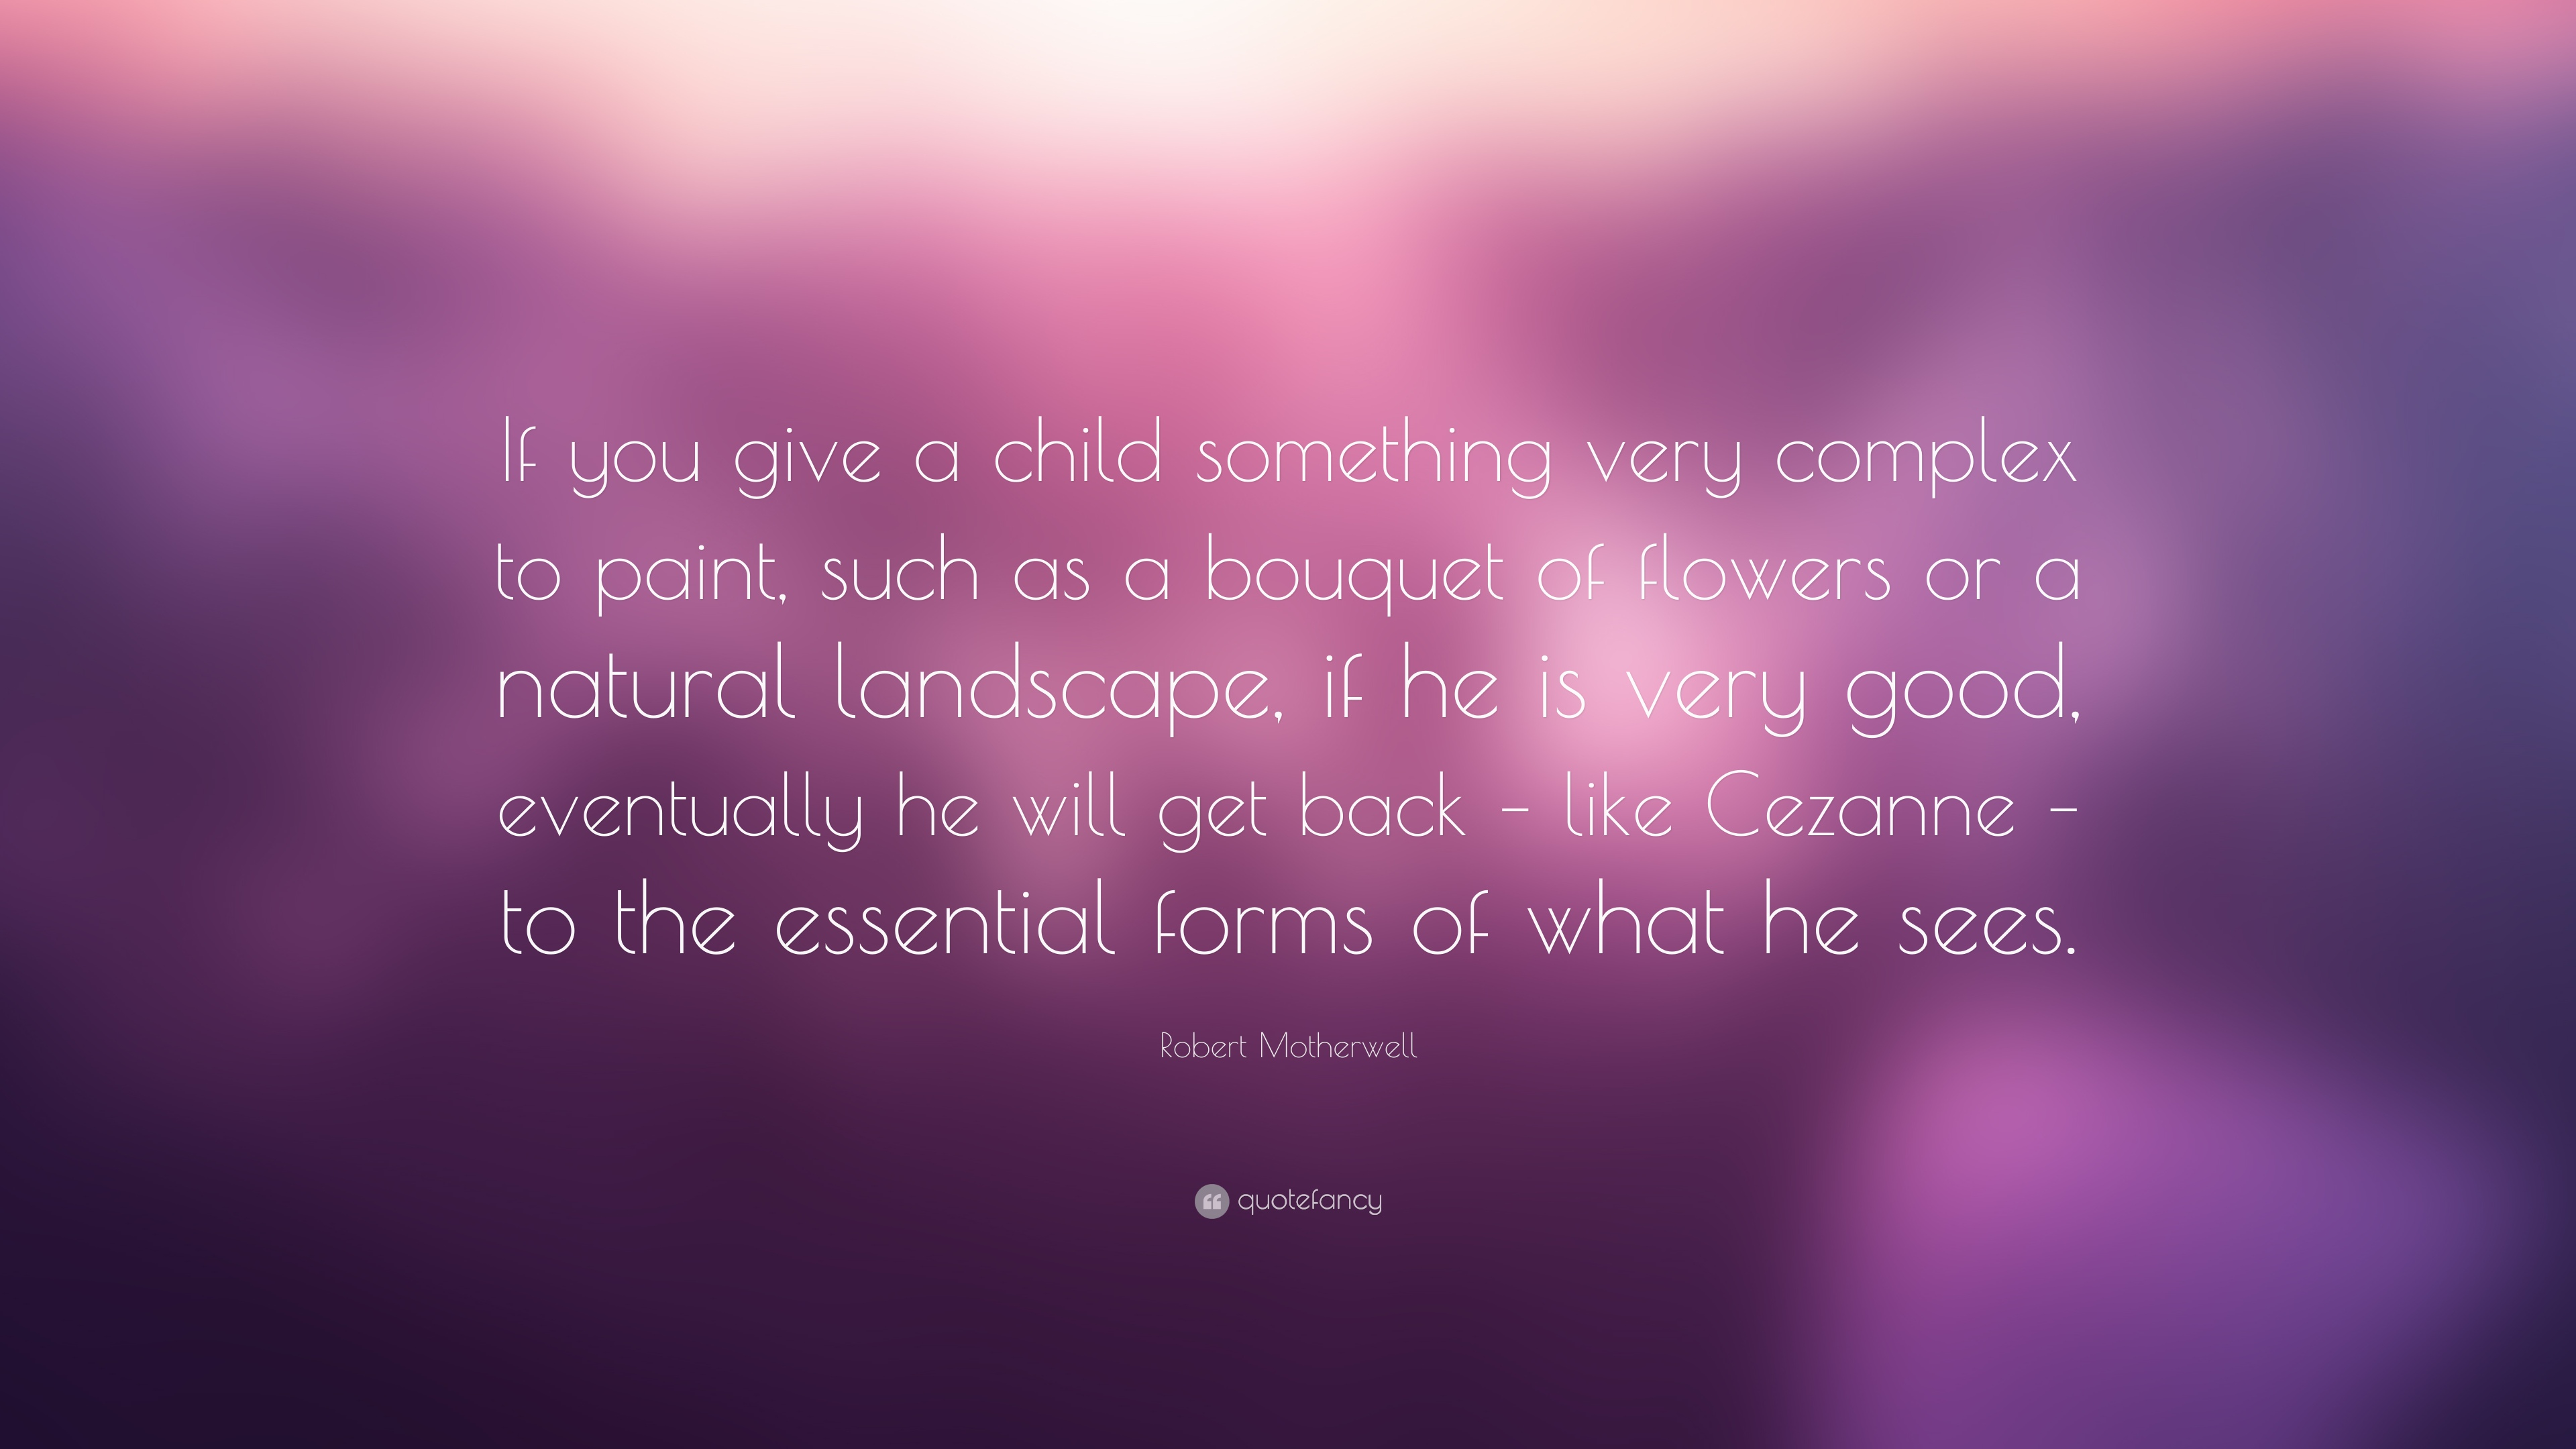 Robert motherwell quote if you give a child something very complex robert motherwell quote if you give a child something very complex to paint izmirmasajfo